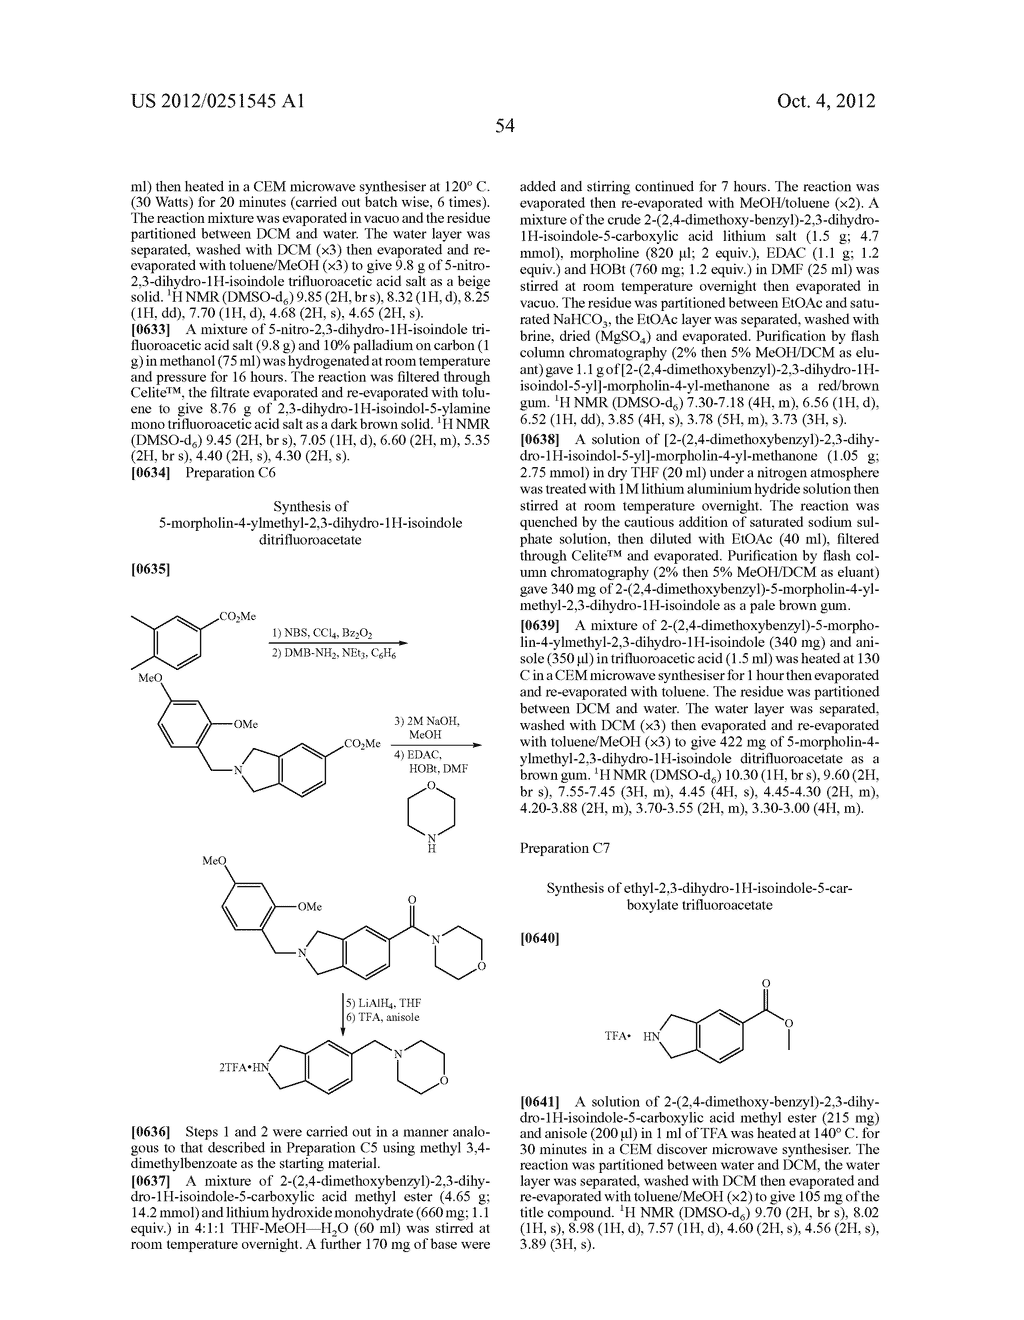 Therapeutic Combinations Of Hydroxybenzamide Derivatives As Inhibitors Of     HSP90 - diagram, schematic, and image 55